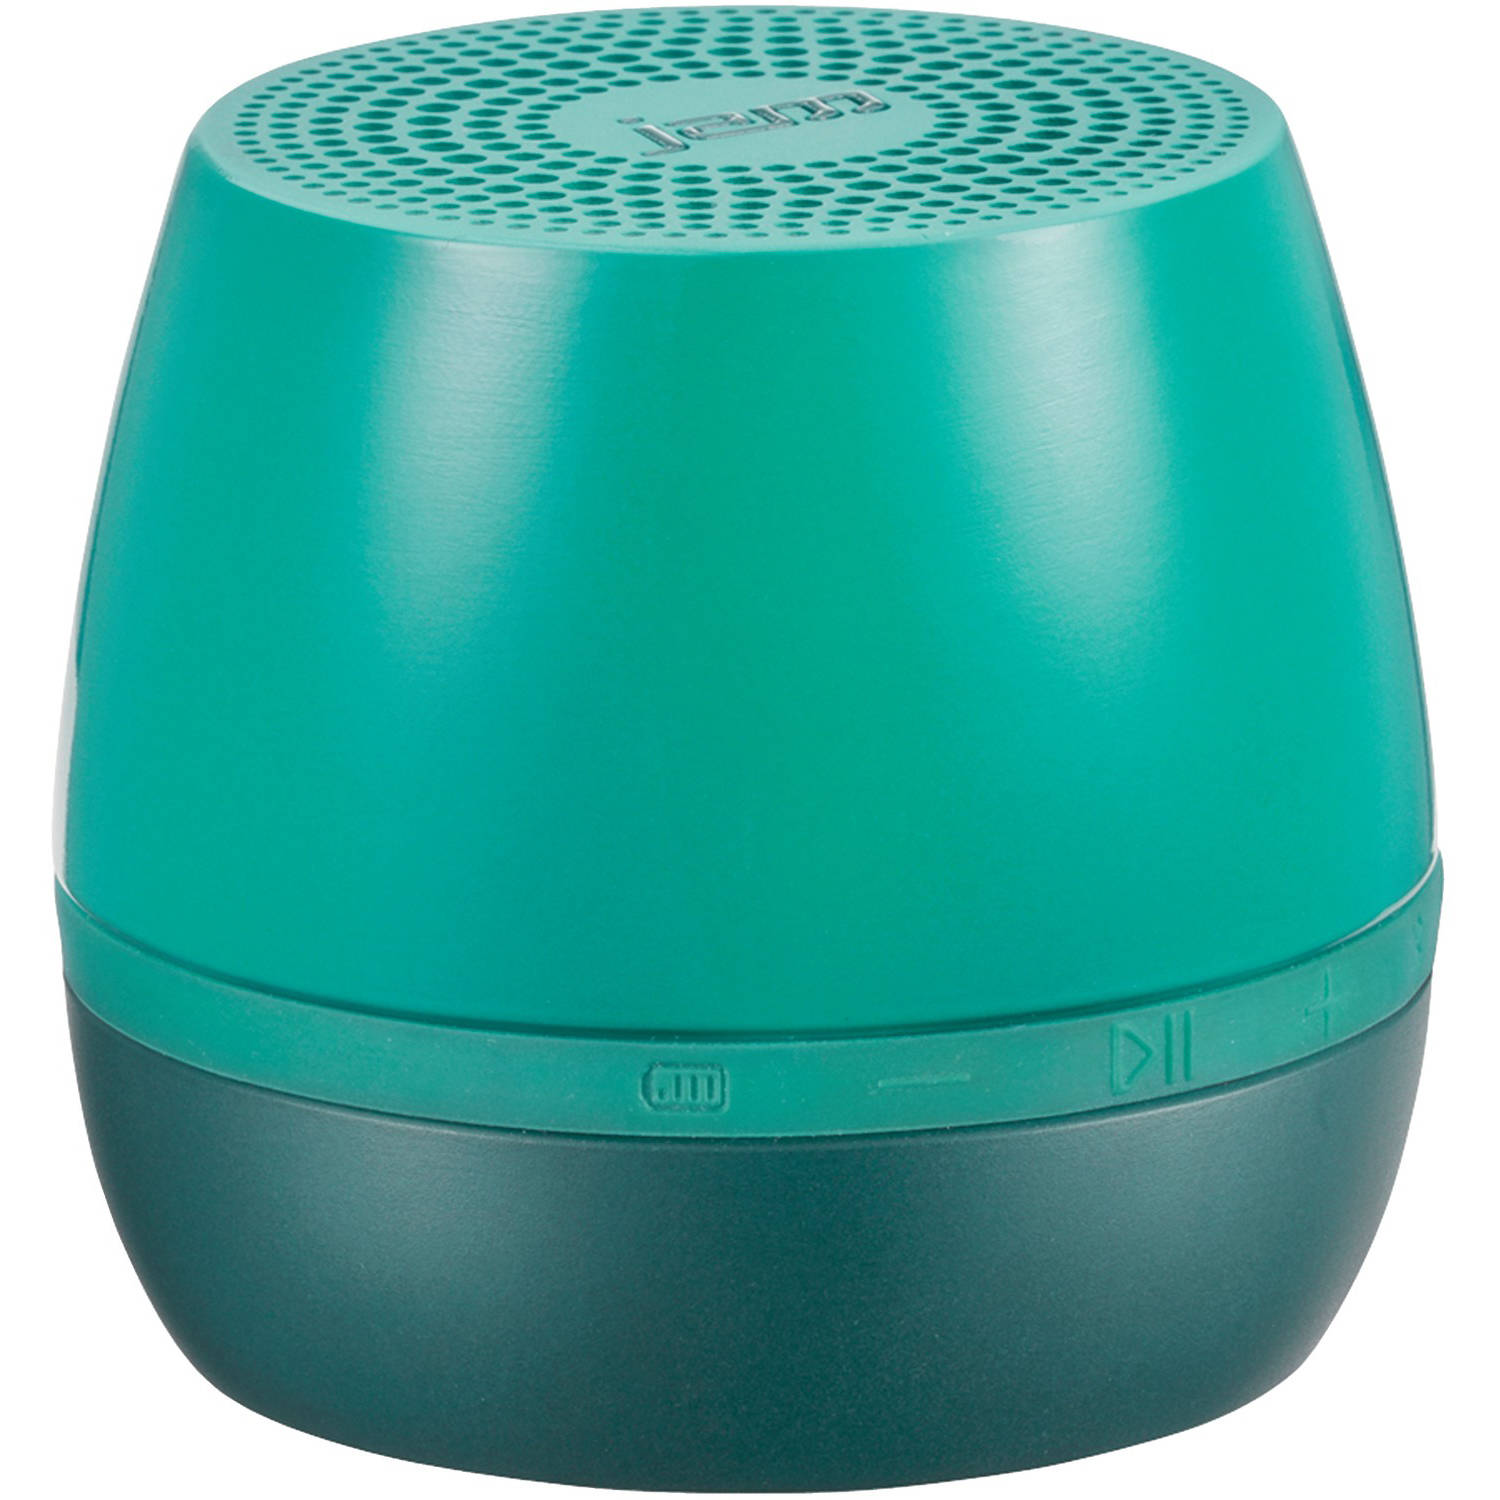 JAM HX-P190GR JAM CLASSIC 2.0 Bluetooth Speaker, Green